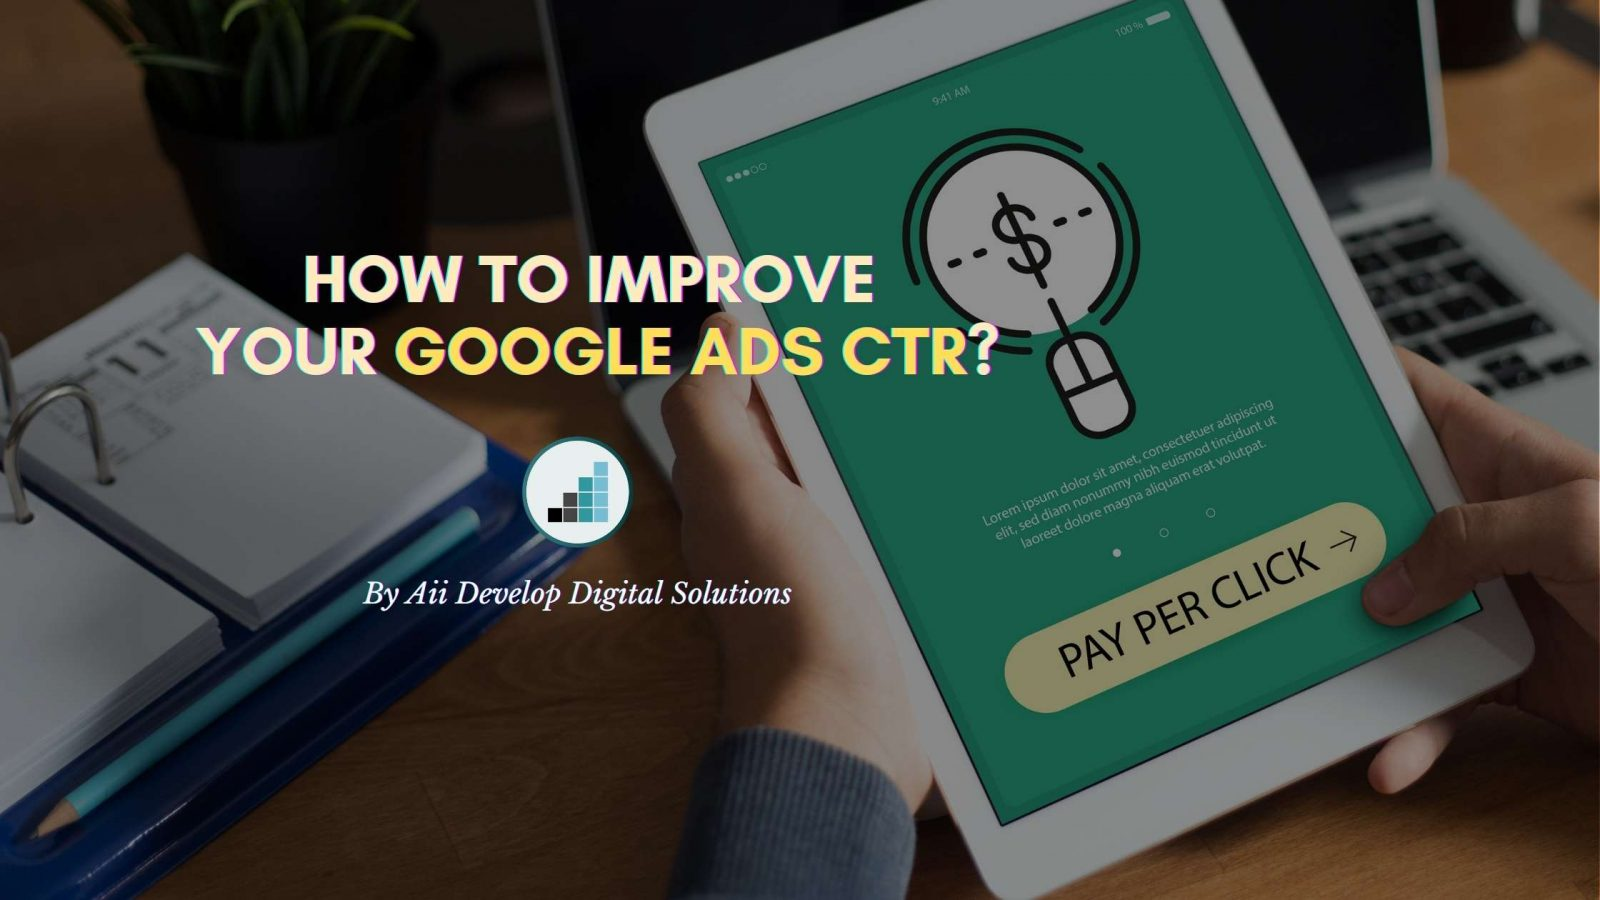 Improve google ads ctr